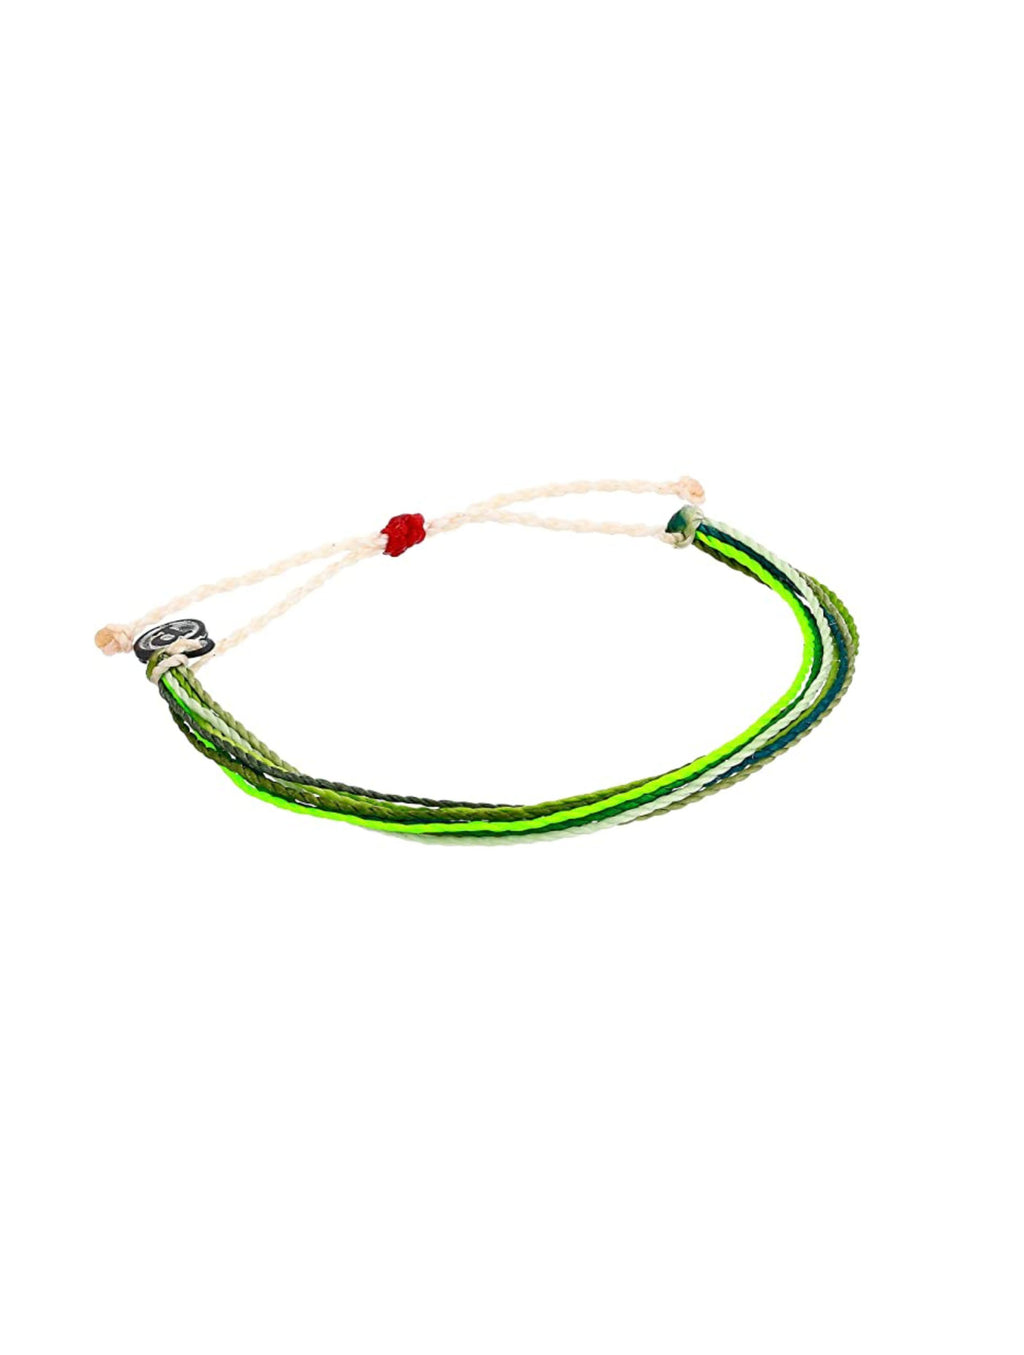 Pura Vida Original Bracelet in Green